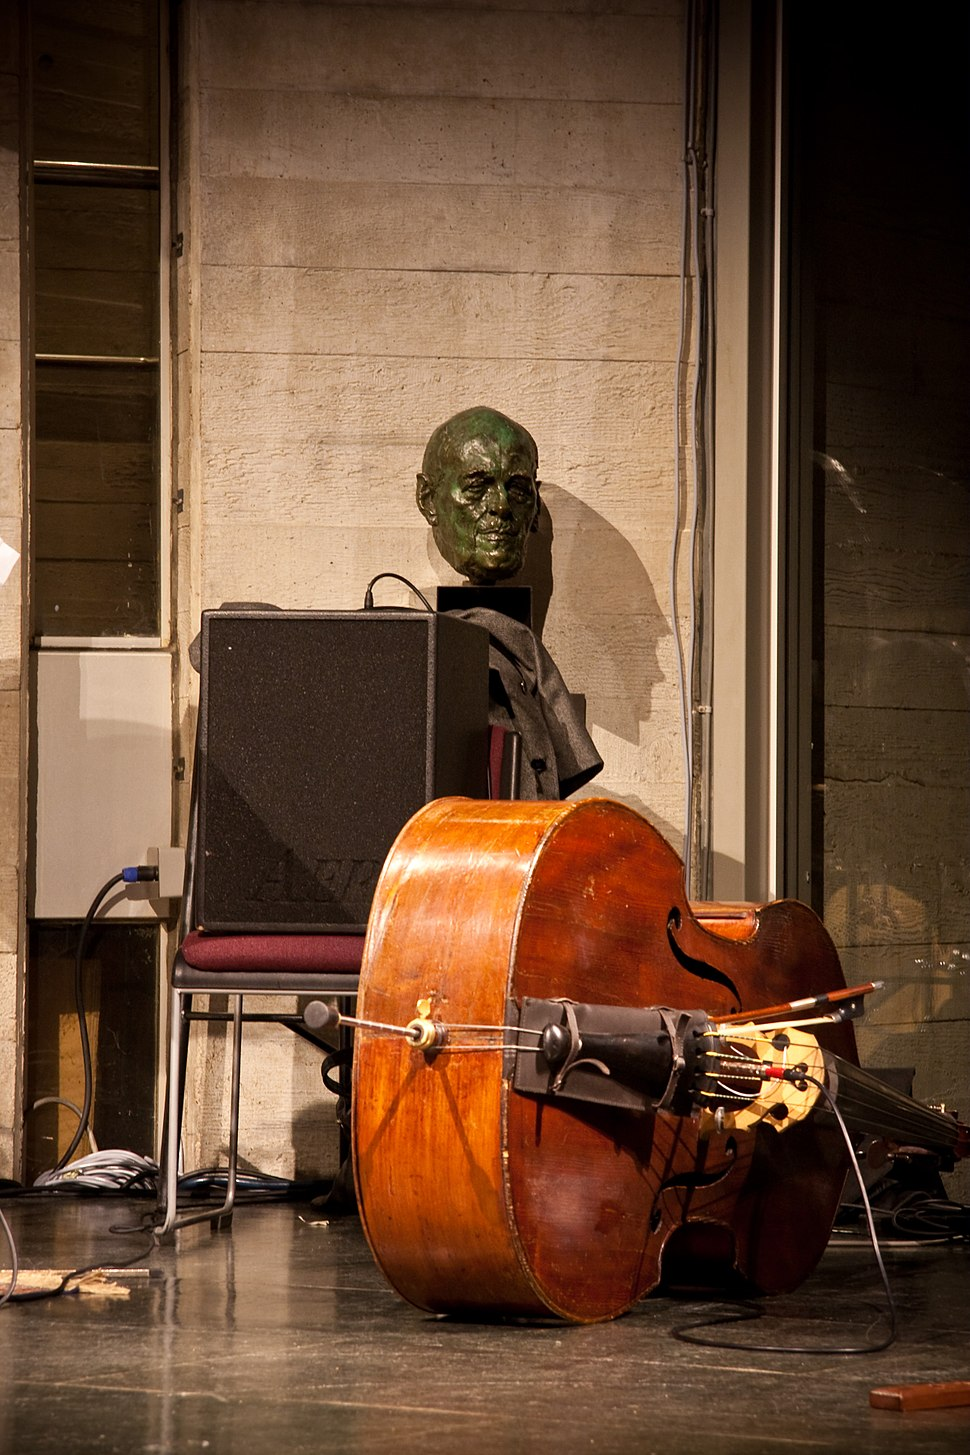 Double Bass during the break (photo by Garry Knight)